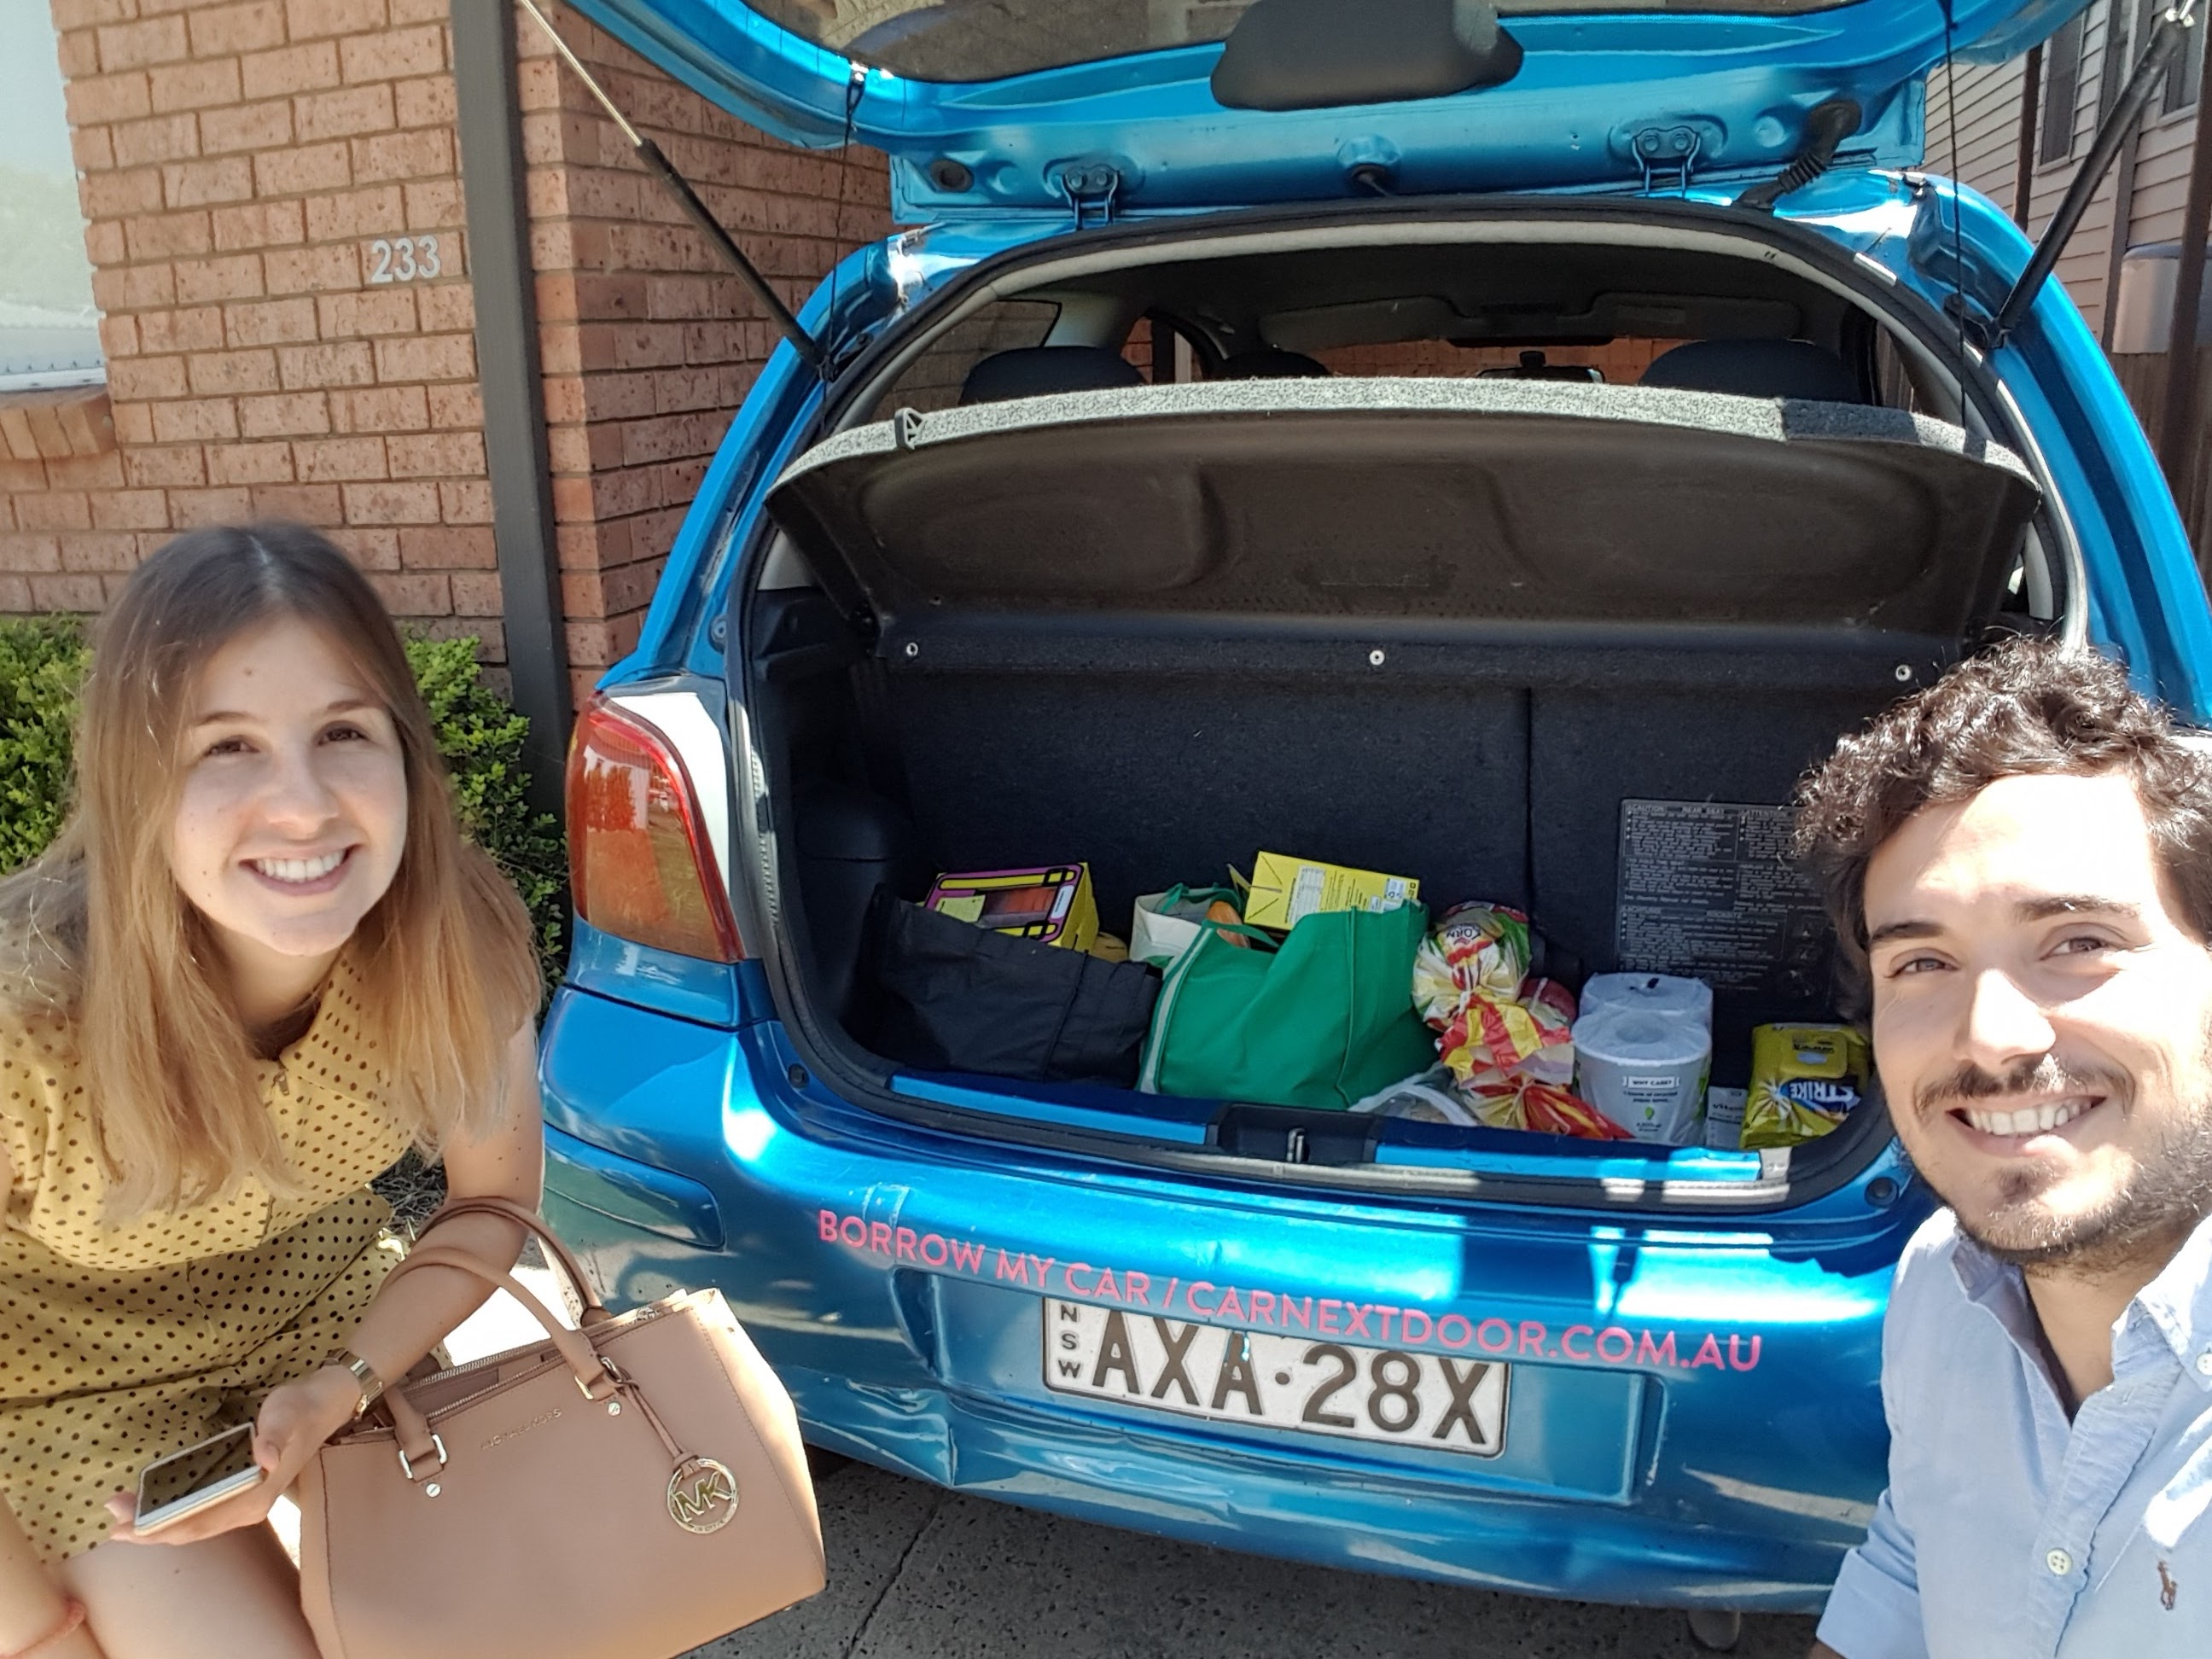 How can I rent out my car in Australia? Top questions answered